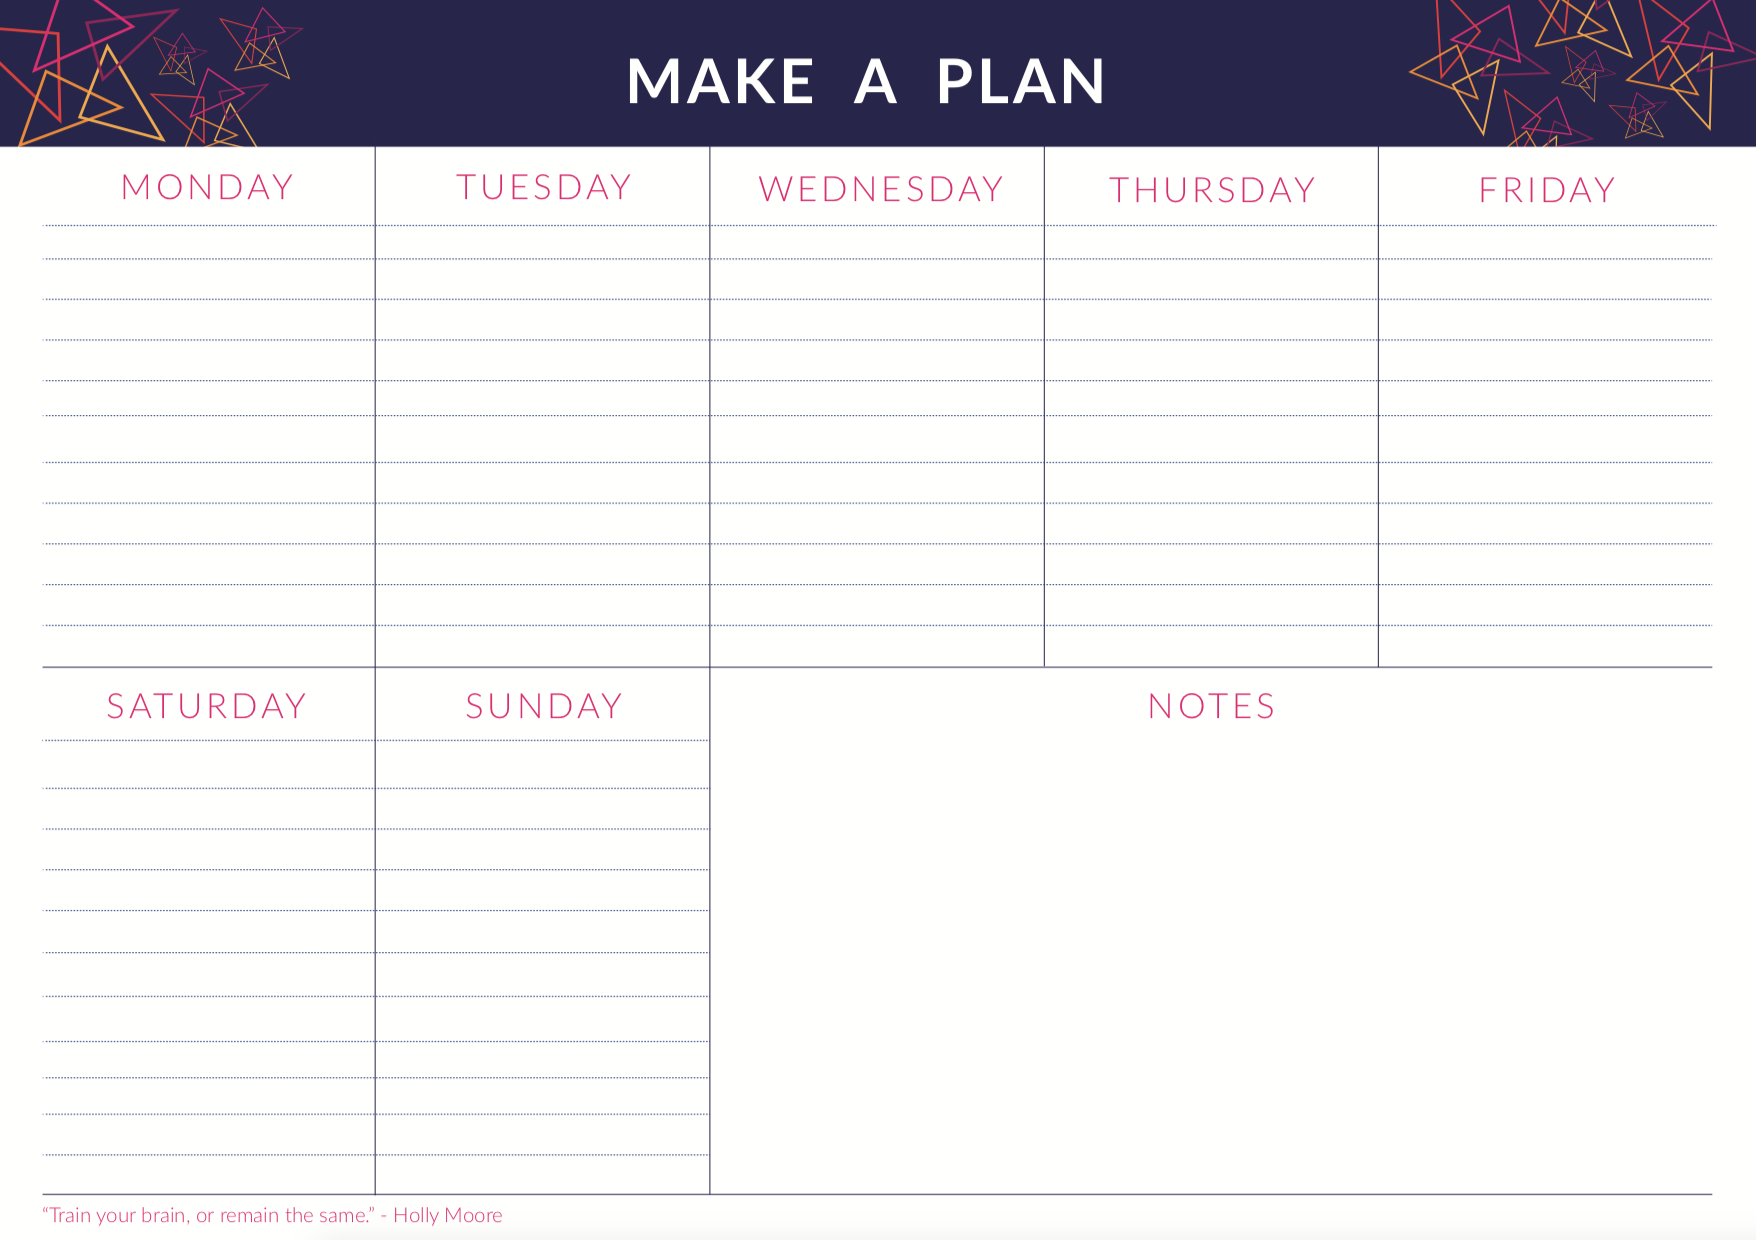 Make Events | Corporate and Virtual Events Company Manchester | Make a plan